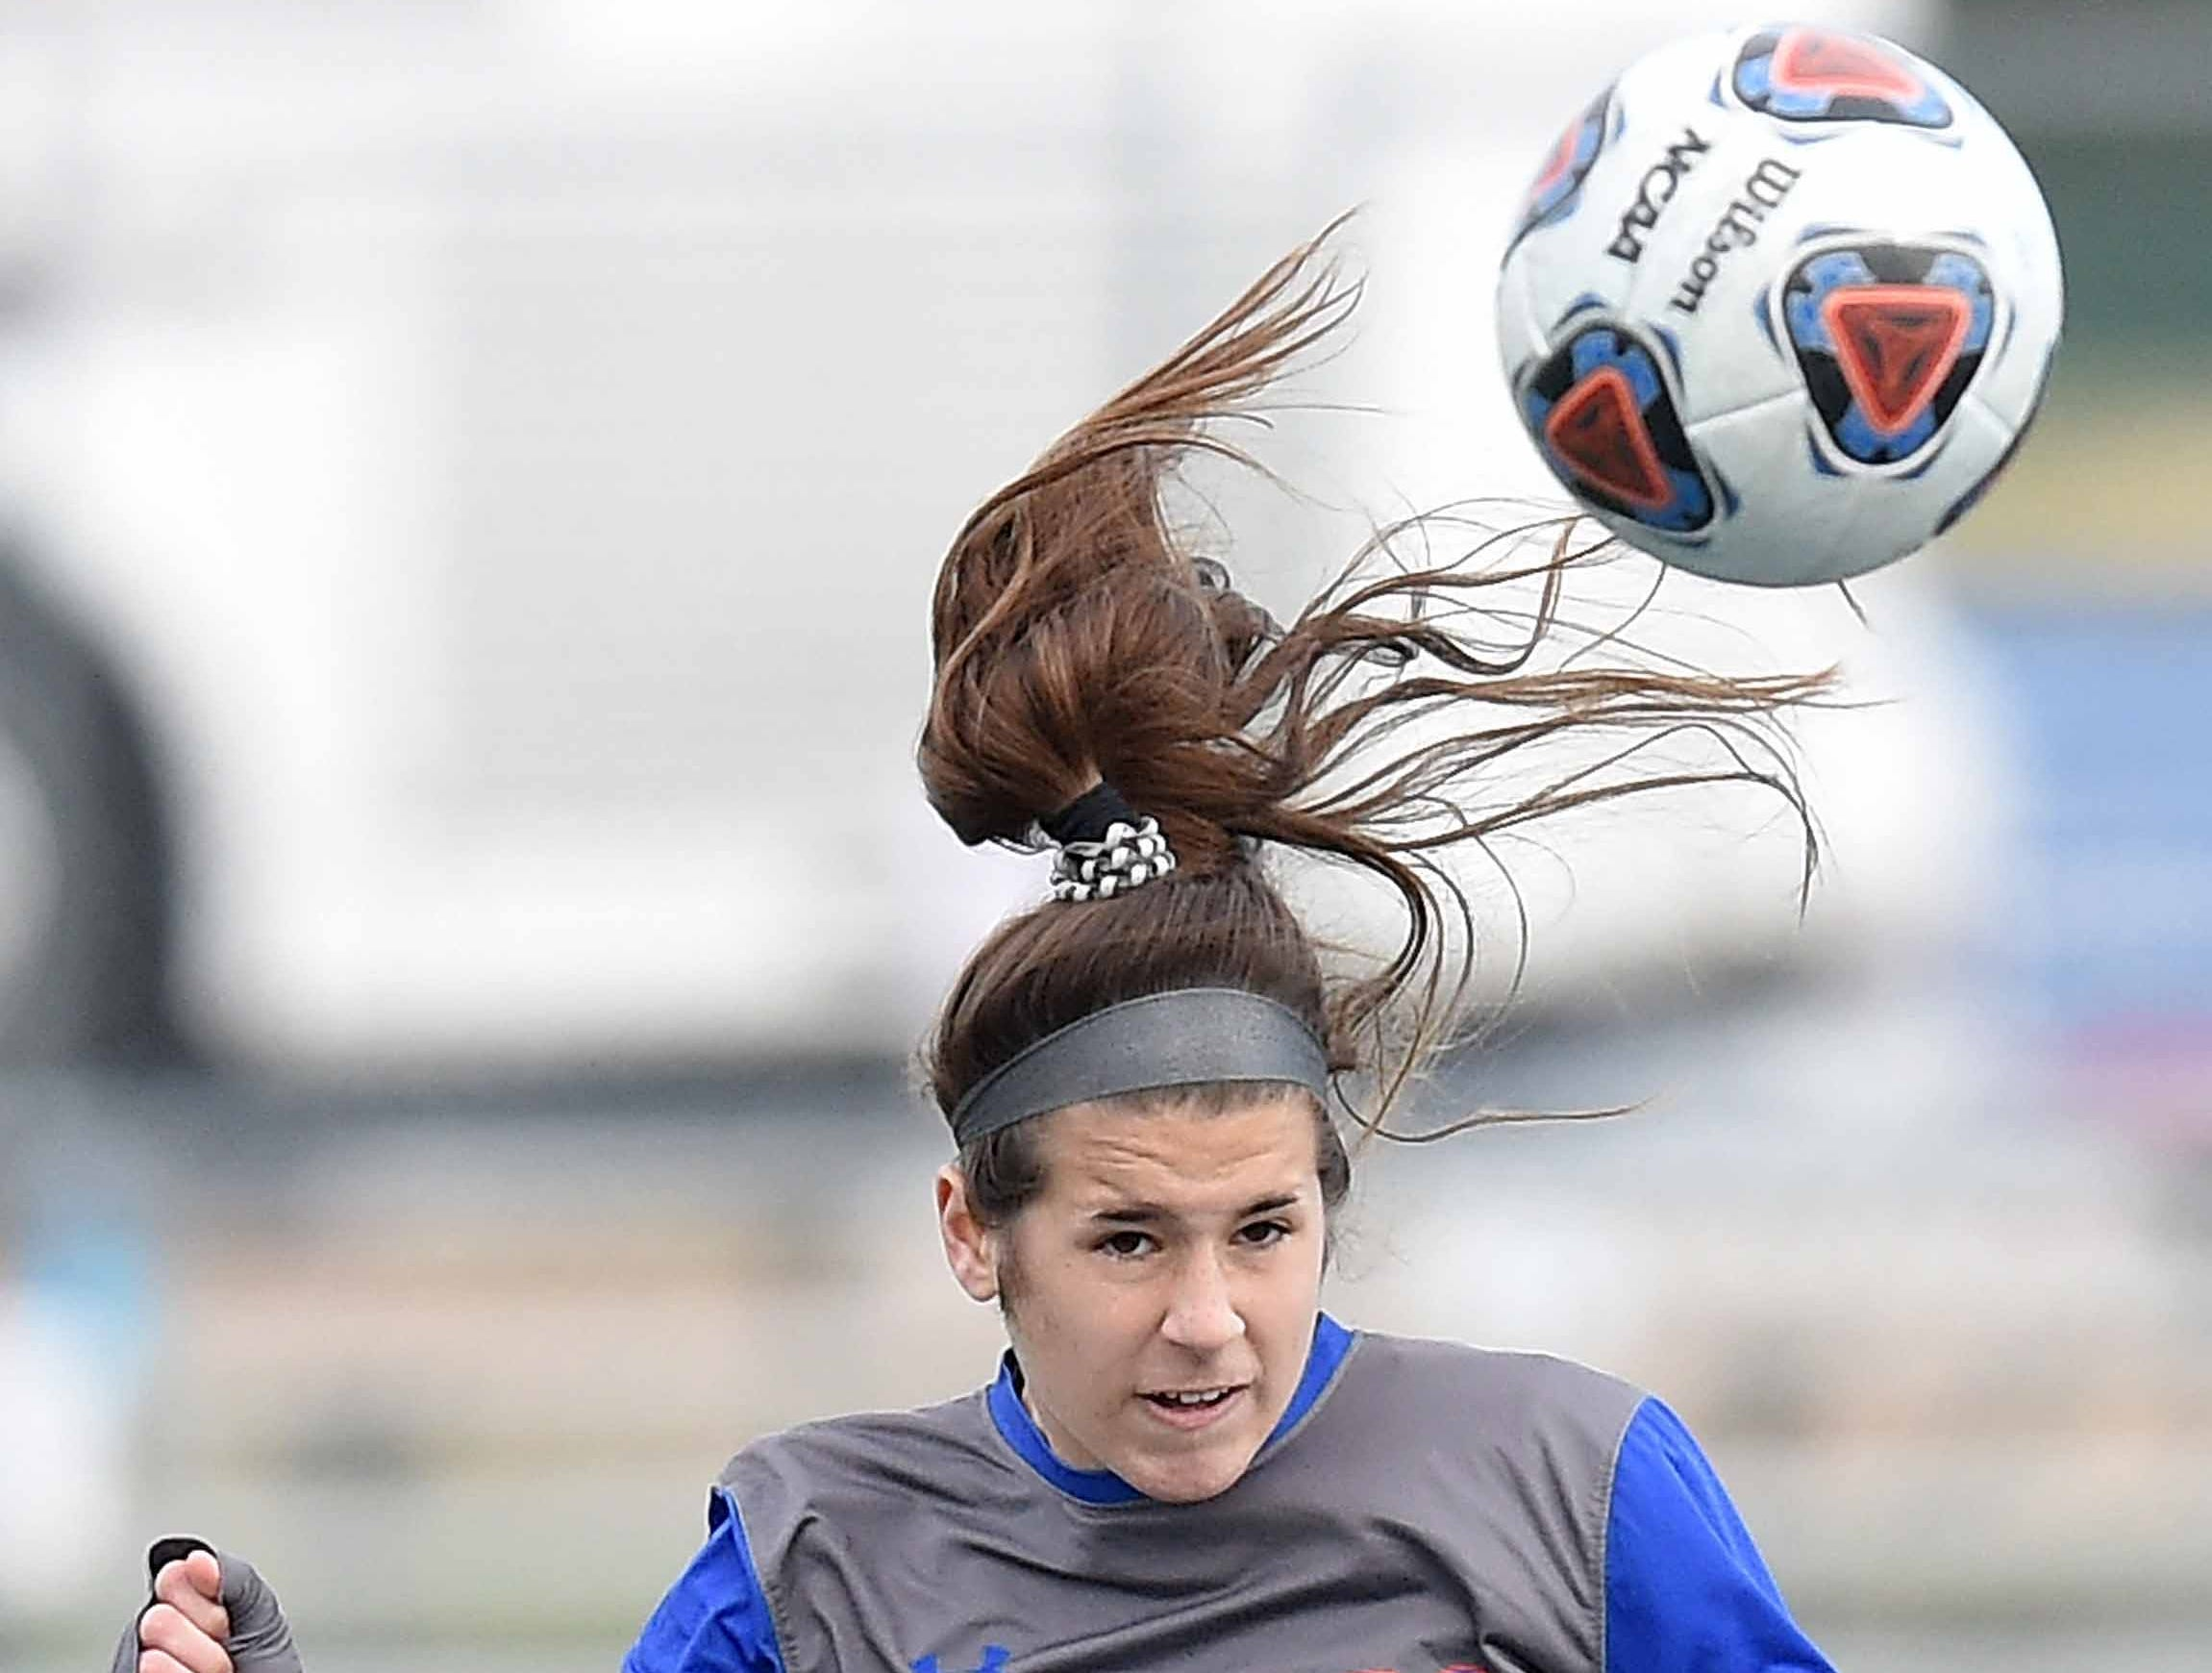 Madison Central's Olivia Deslatte (20) heads the ball against Ocean Springs in the Class 6A state championship in the MHSAA BlueCross Blue Shield of Mississippi Soccer Classic on Saturday, February 9, 2019, at Ridgeland High School in Ridgeland, Miss.